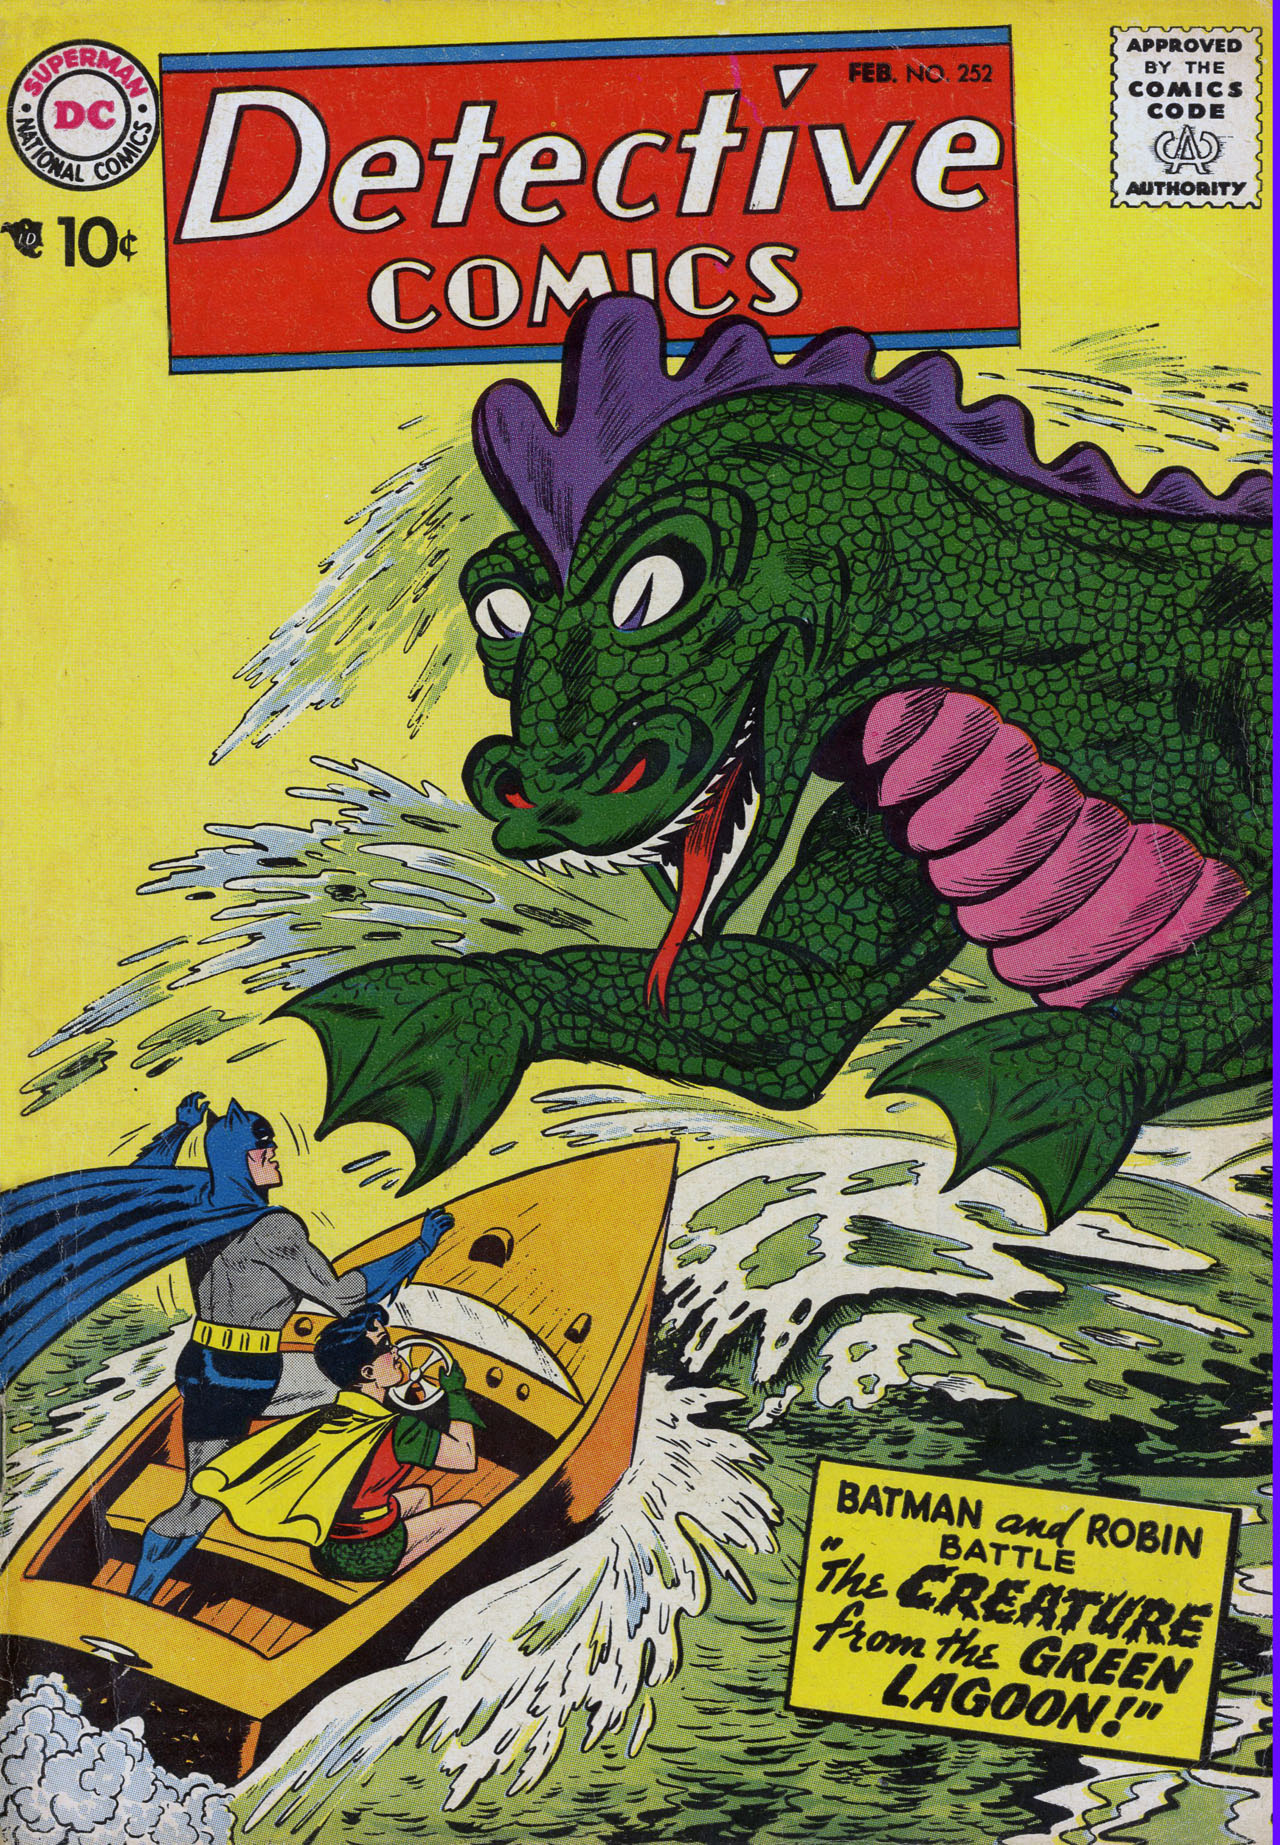 Read online Detective Comics (1937) comic -  Issue #252 - 1